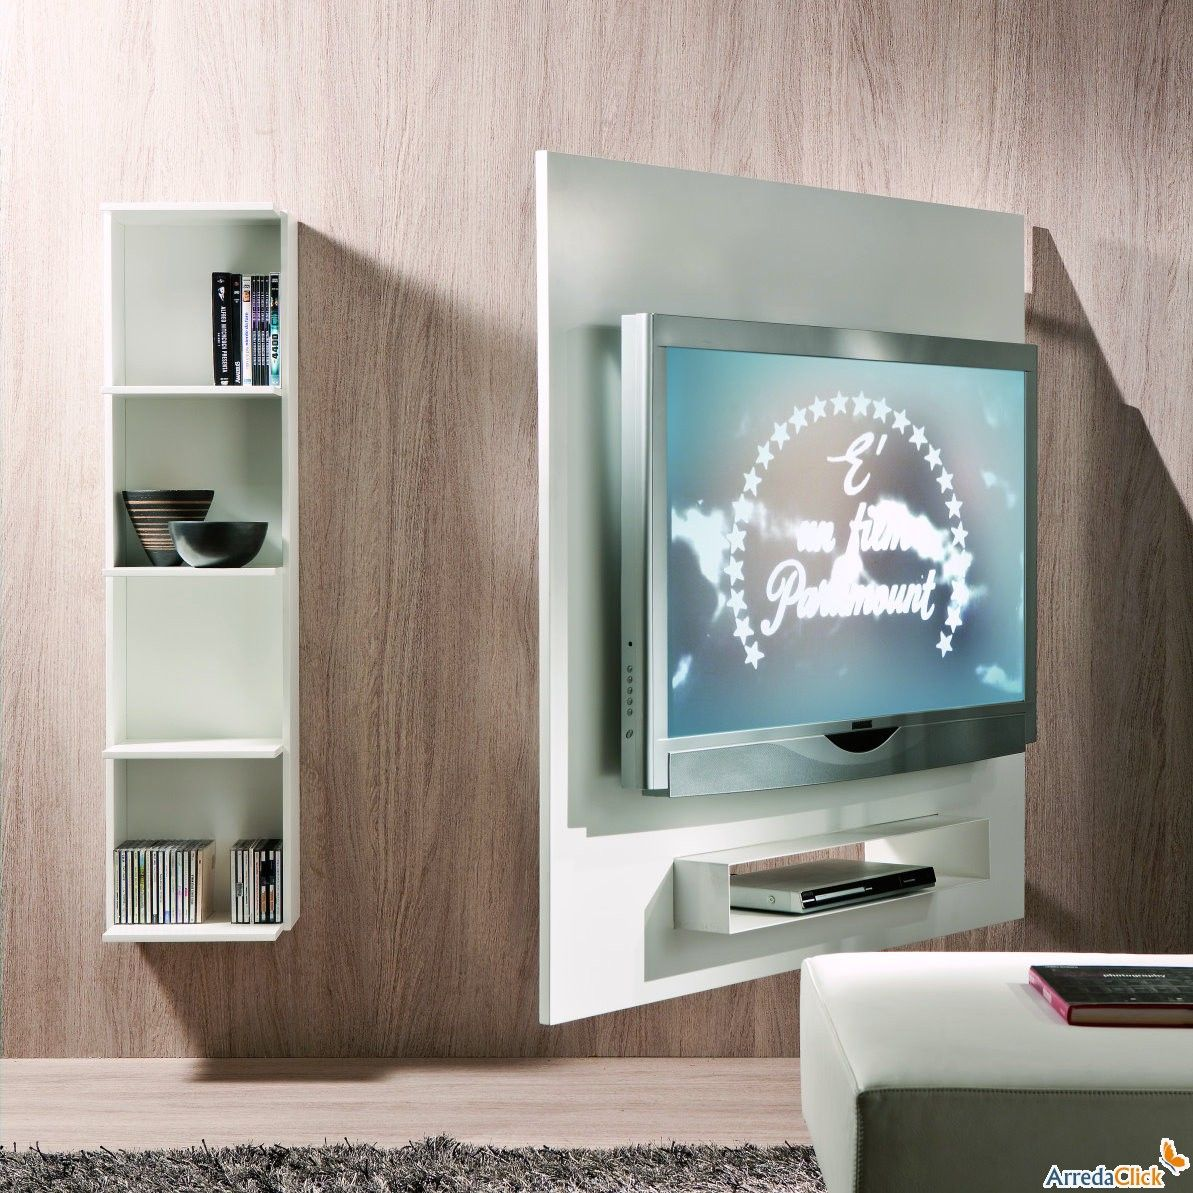 Porta tv orientabile a parete con libreria ghost for Parete porta tv